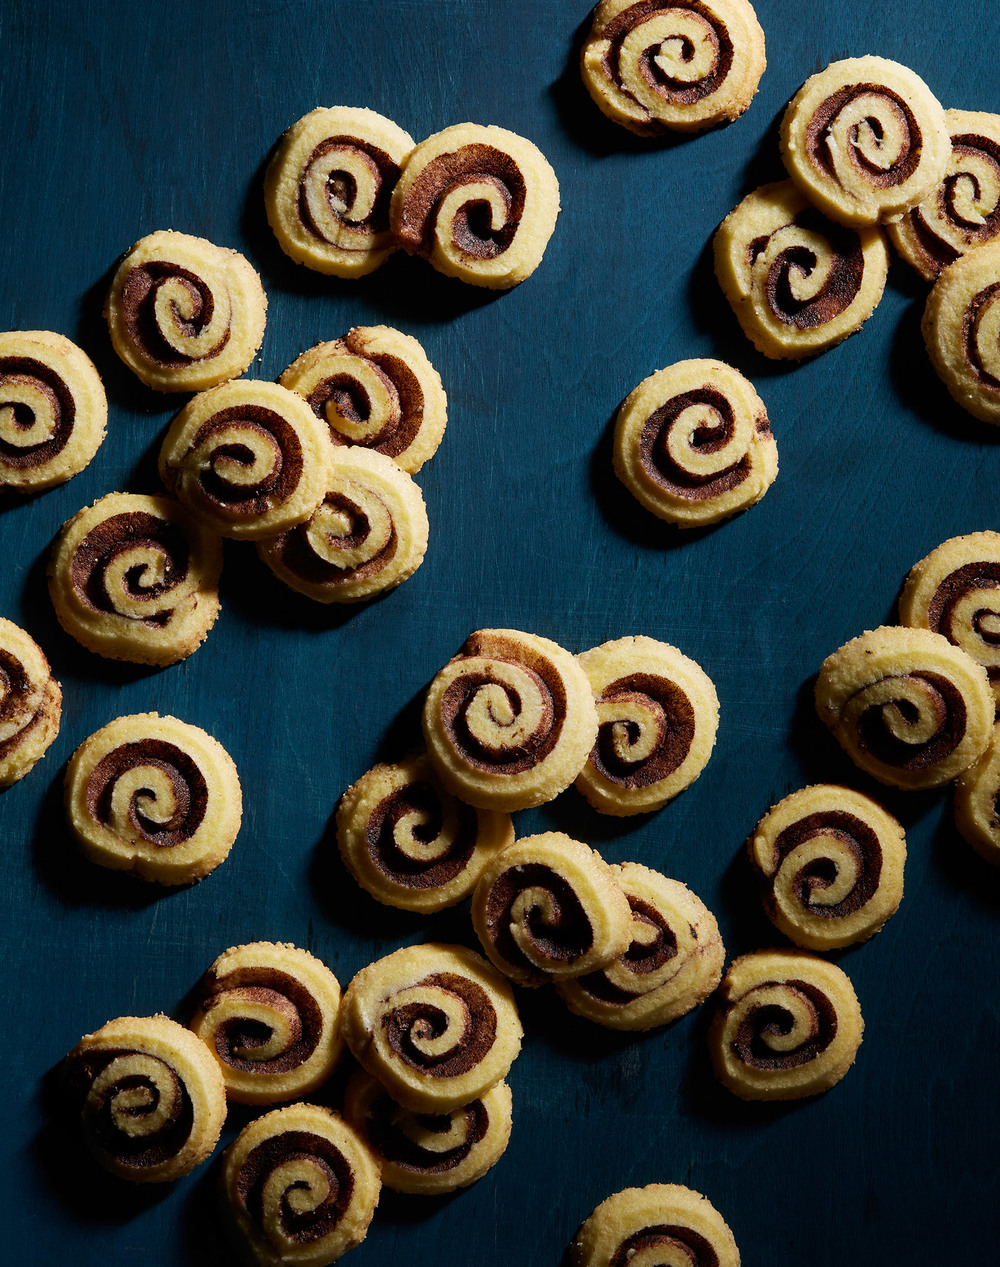 gluten free lemon anise cookies with cocoa swirl